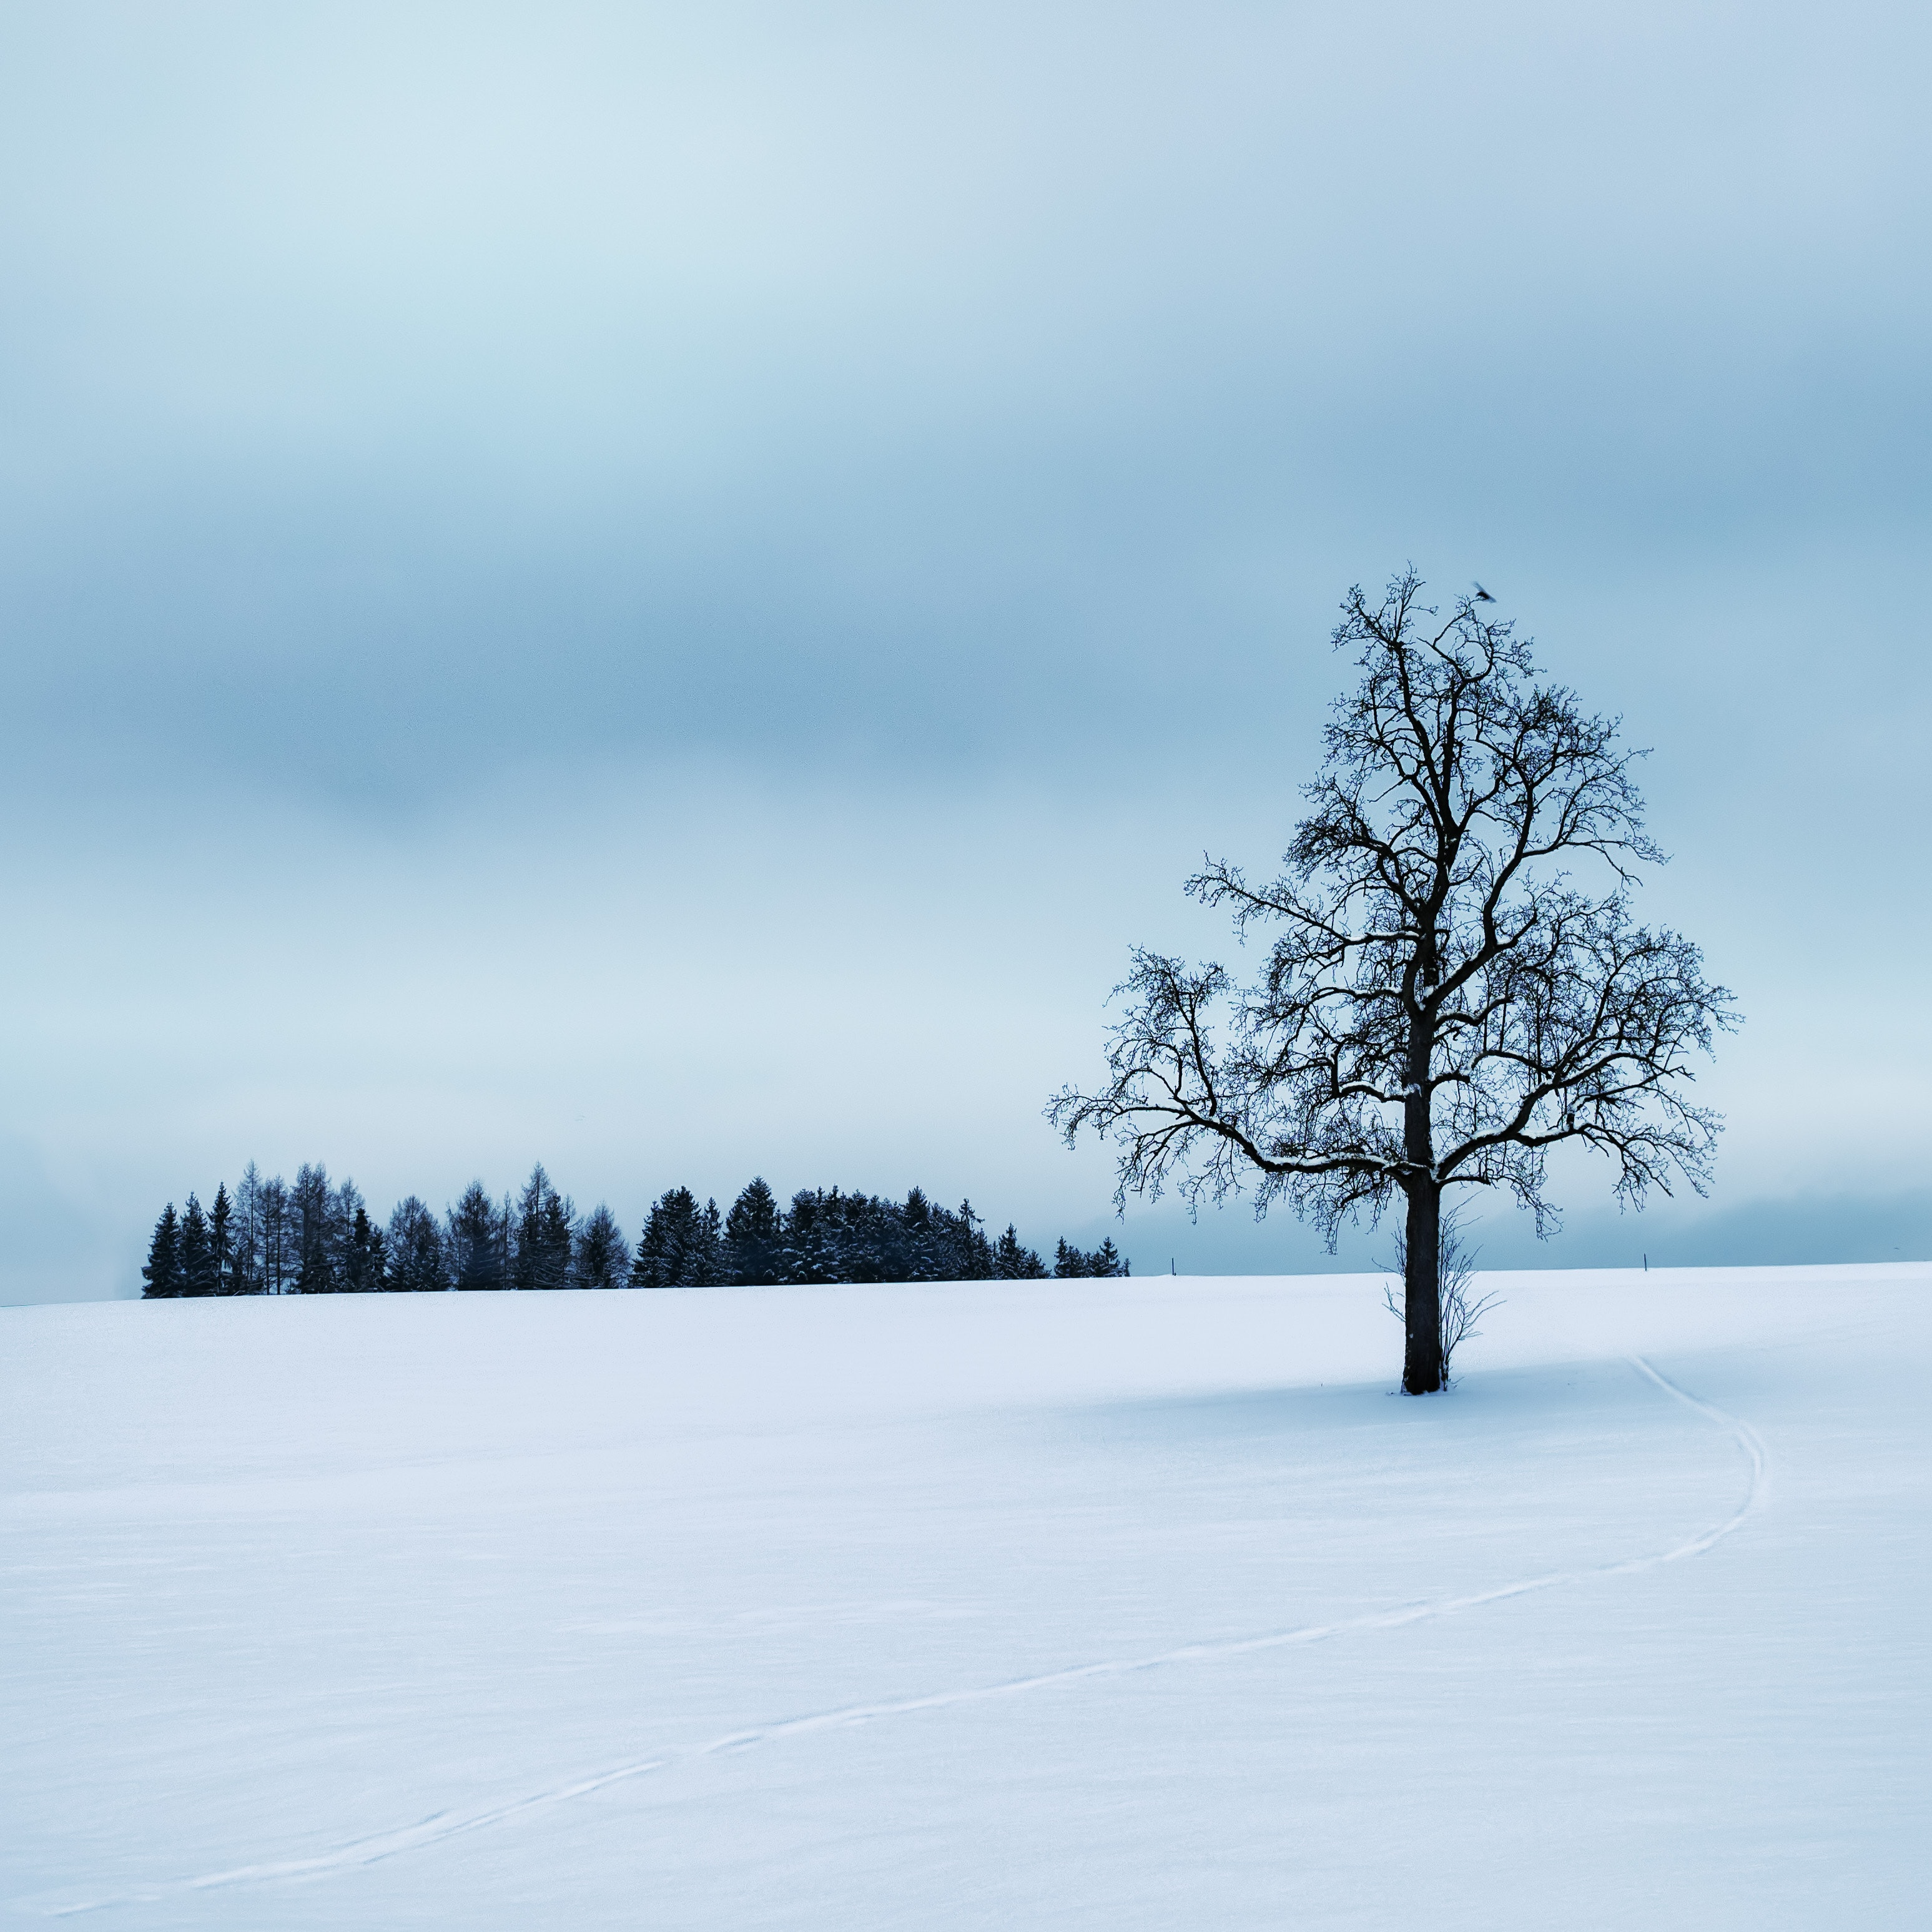 Tree Surrounded by Snow, Austria, Season, Winter landscape, Winter, HQ Photo